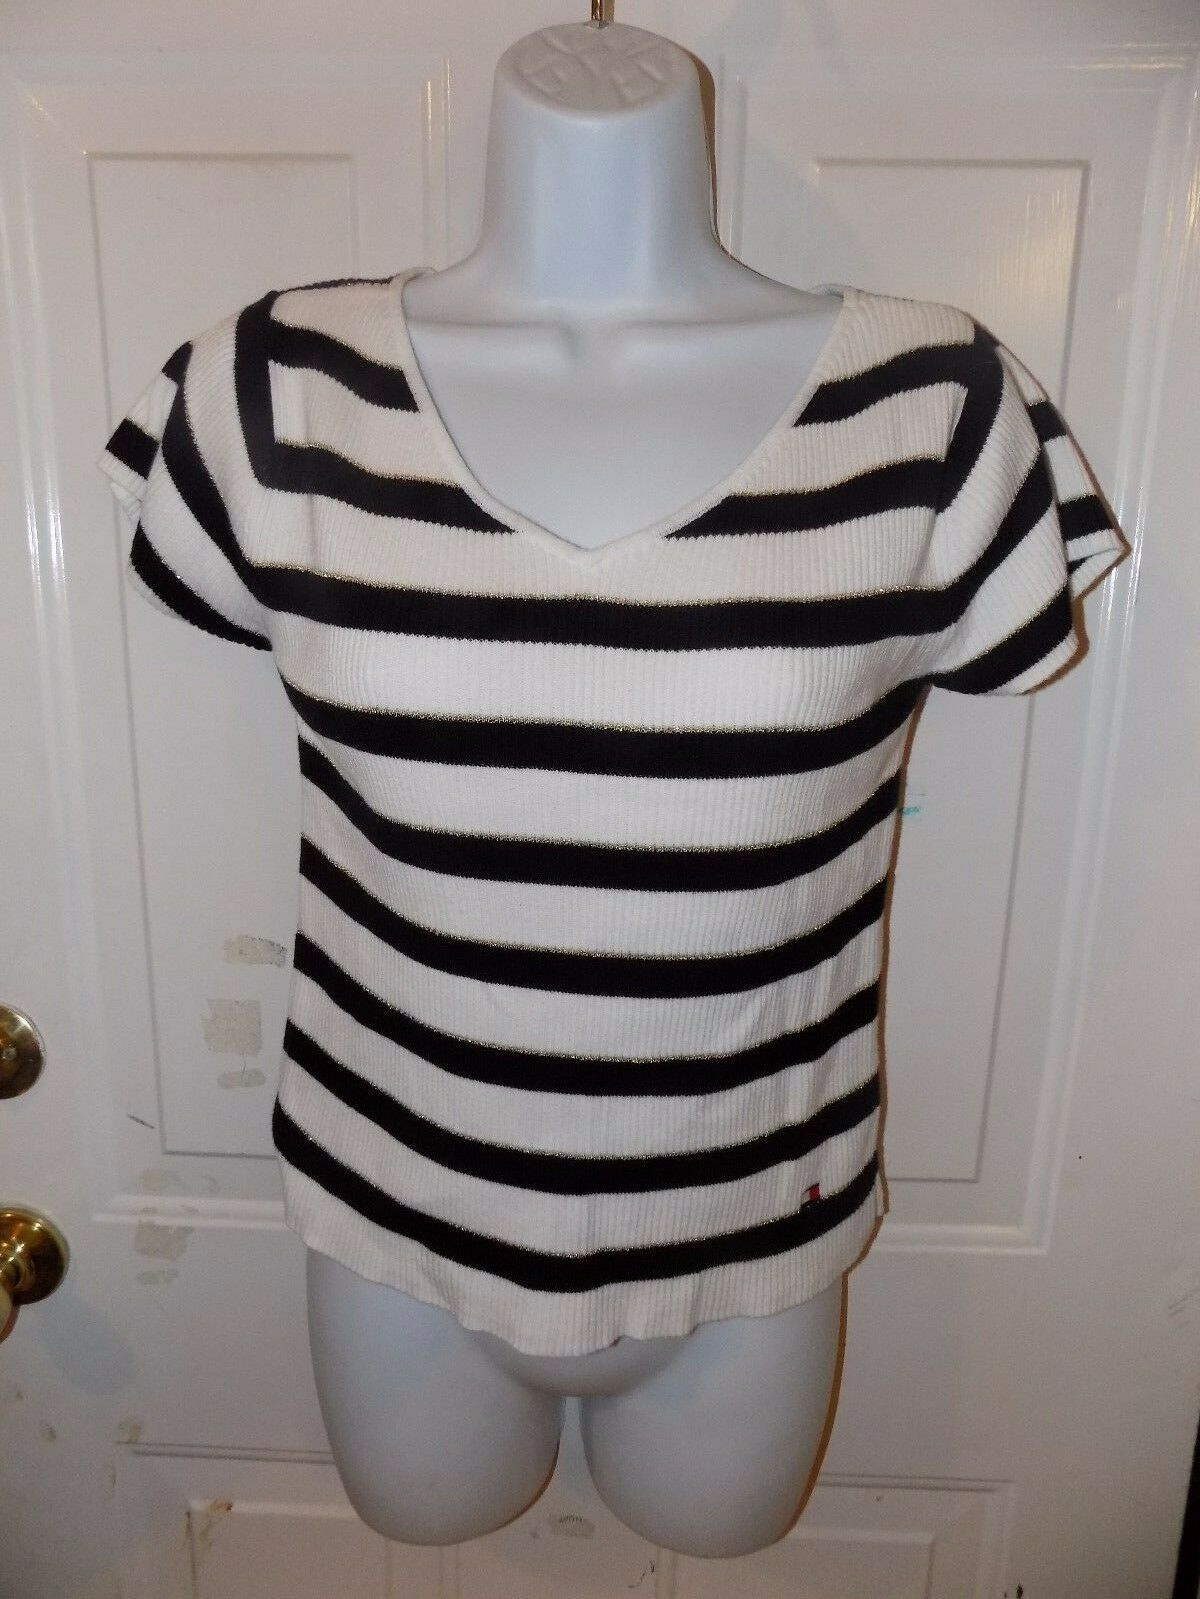 Primary image for TOMMY HILFIGER STRIPED V-NECK SHORT SLEEVE SWEATER SIZE M WOMEN'S EUC